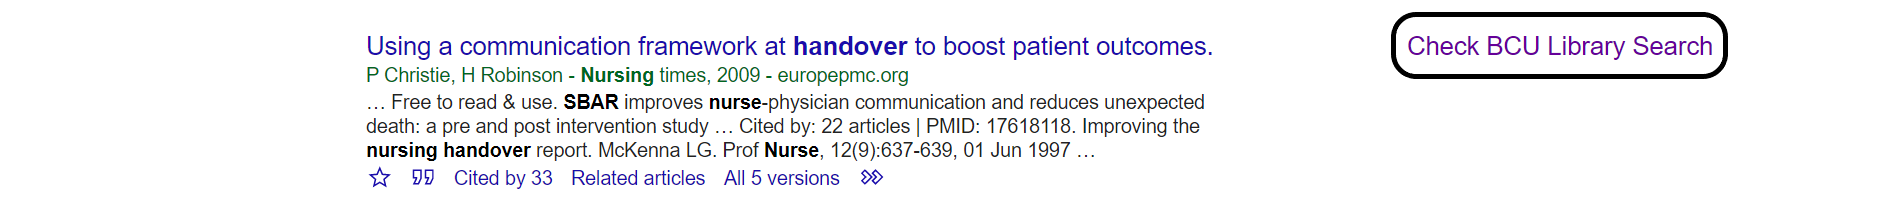 Google Scholar search result with Check BCU Library Search library link highlighted